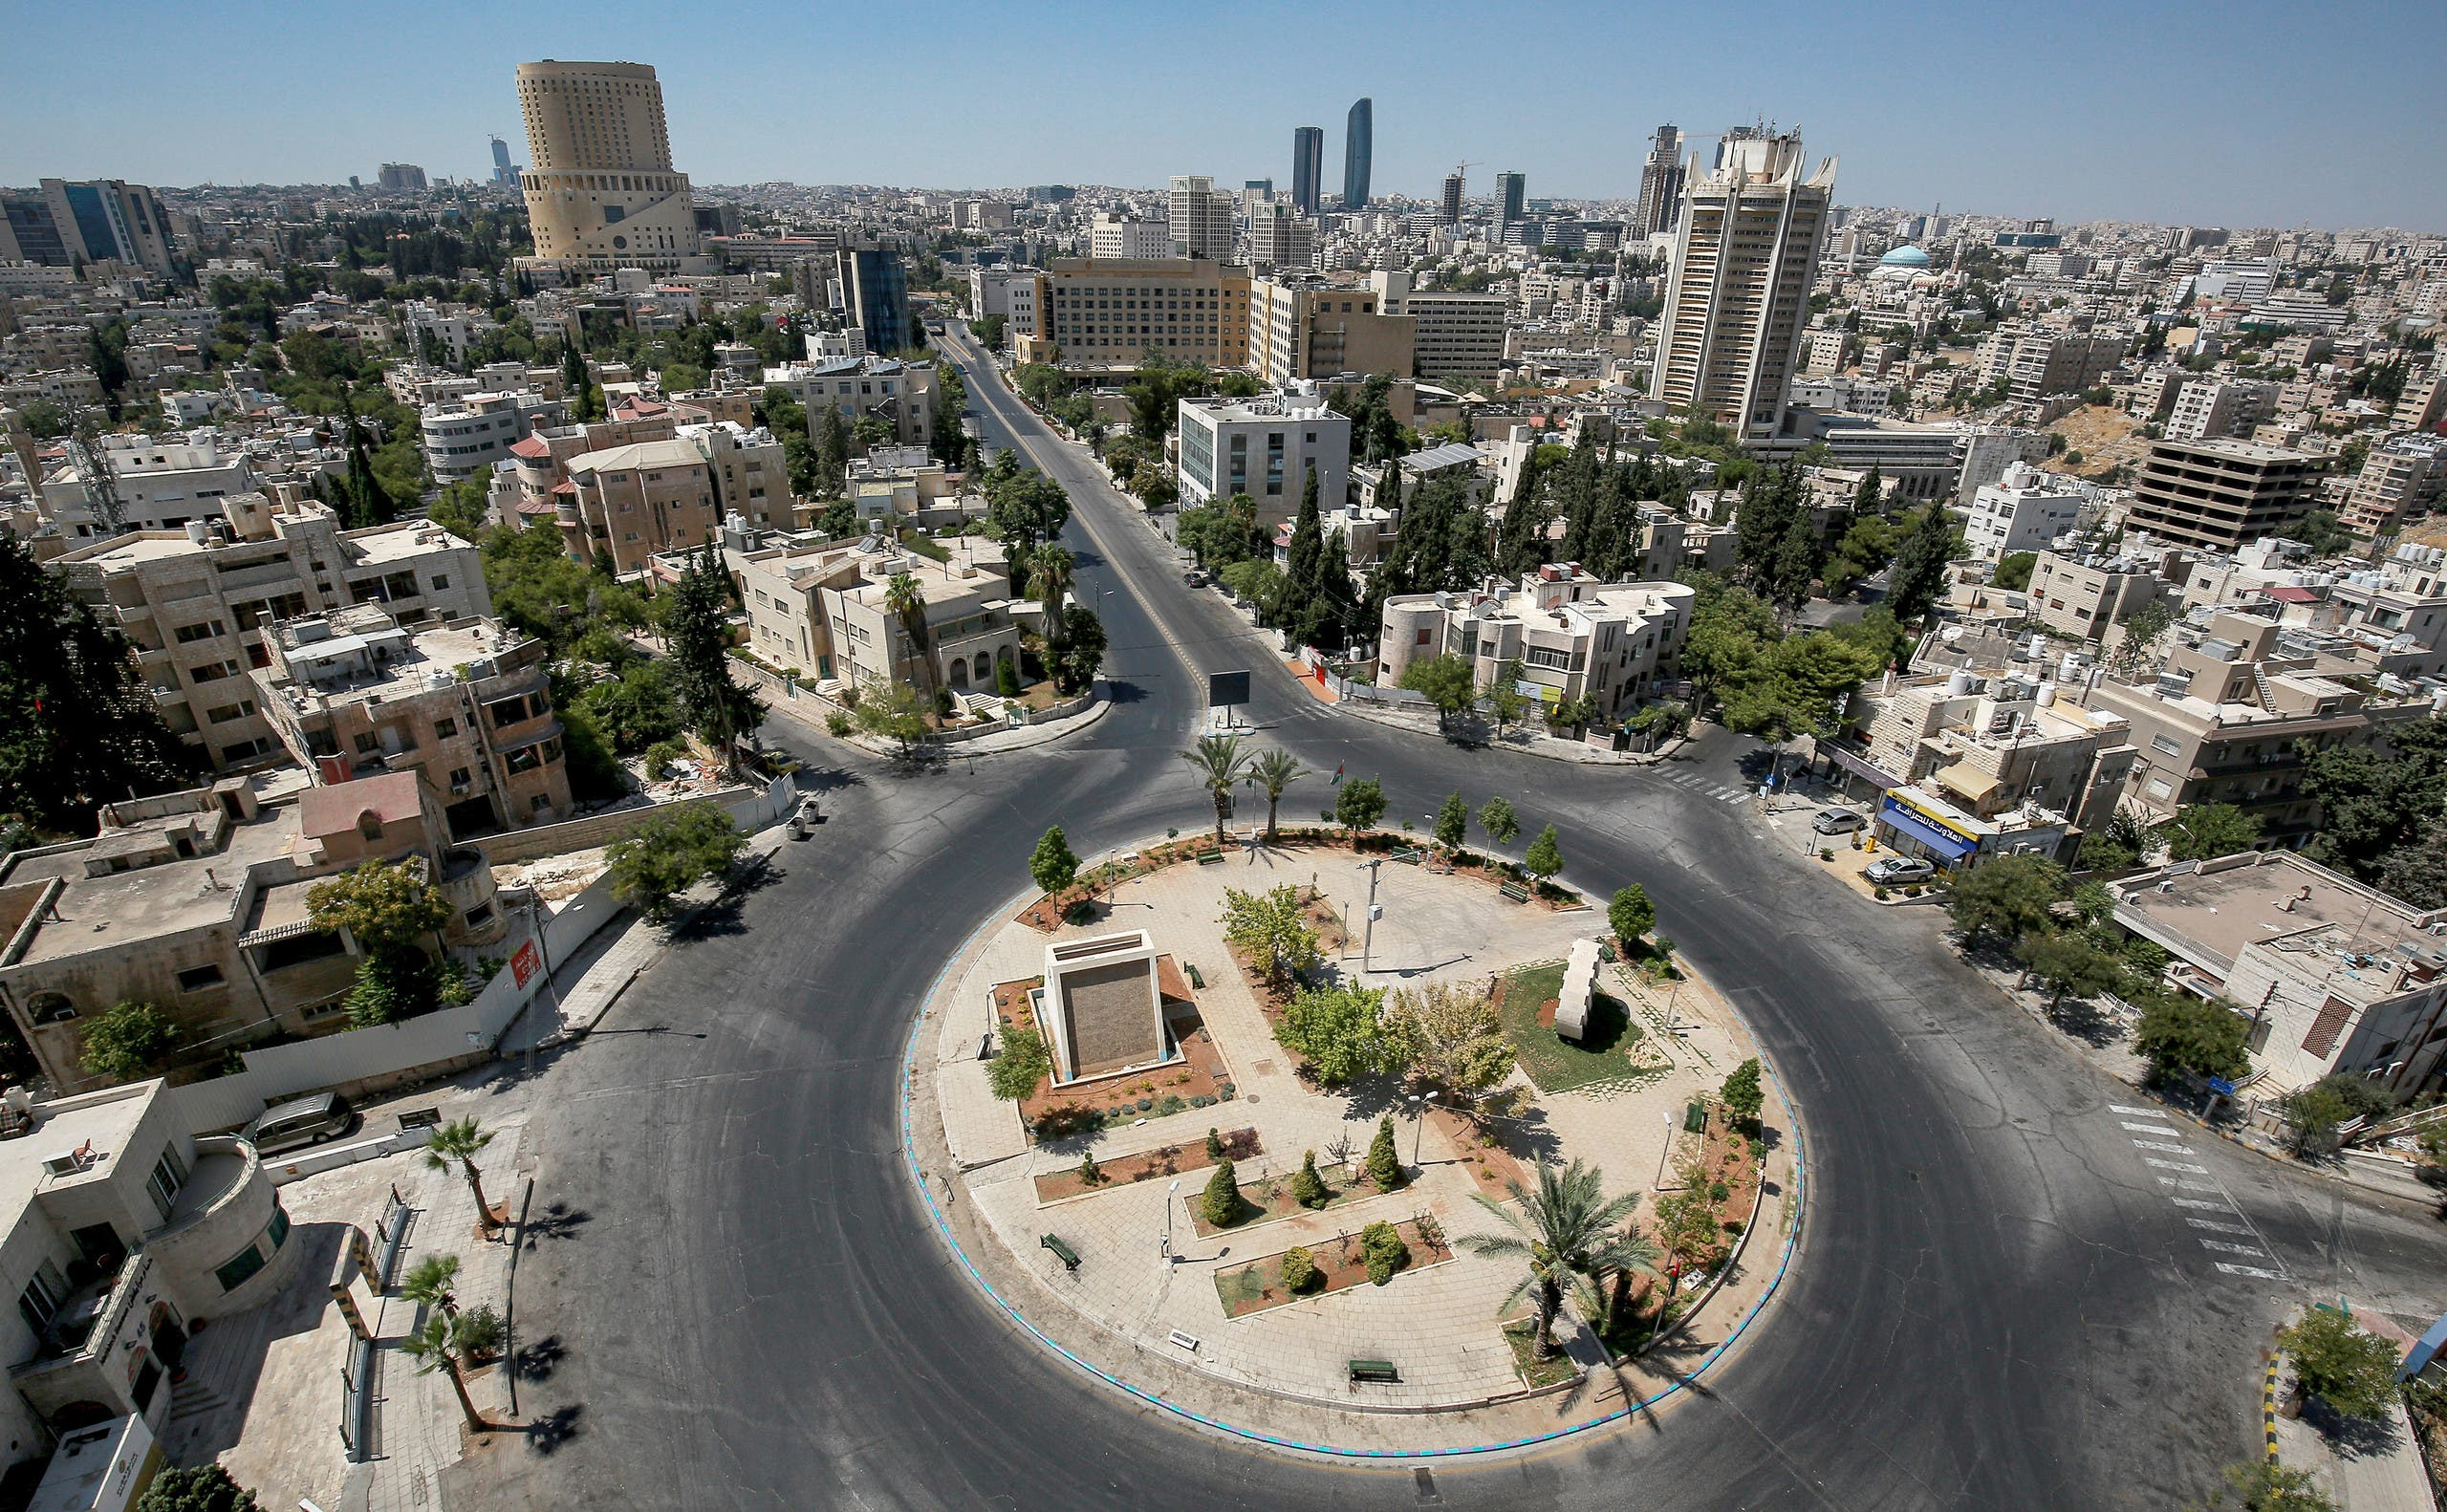 A view of an empty roundabout during a coronavirus pandemic curfew in the center of Jordan's capital Amman. (AFP)